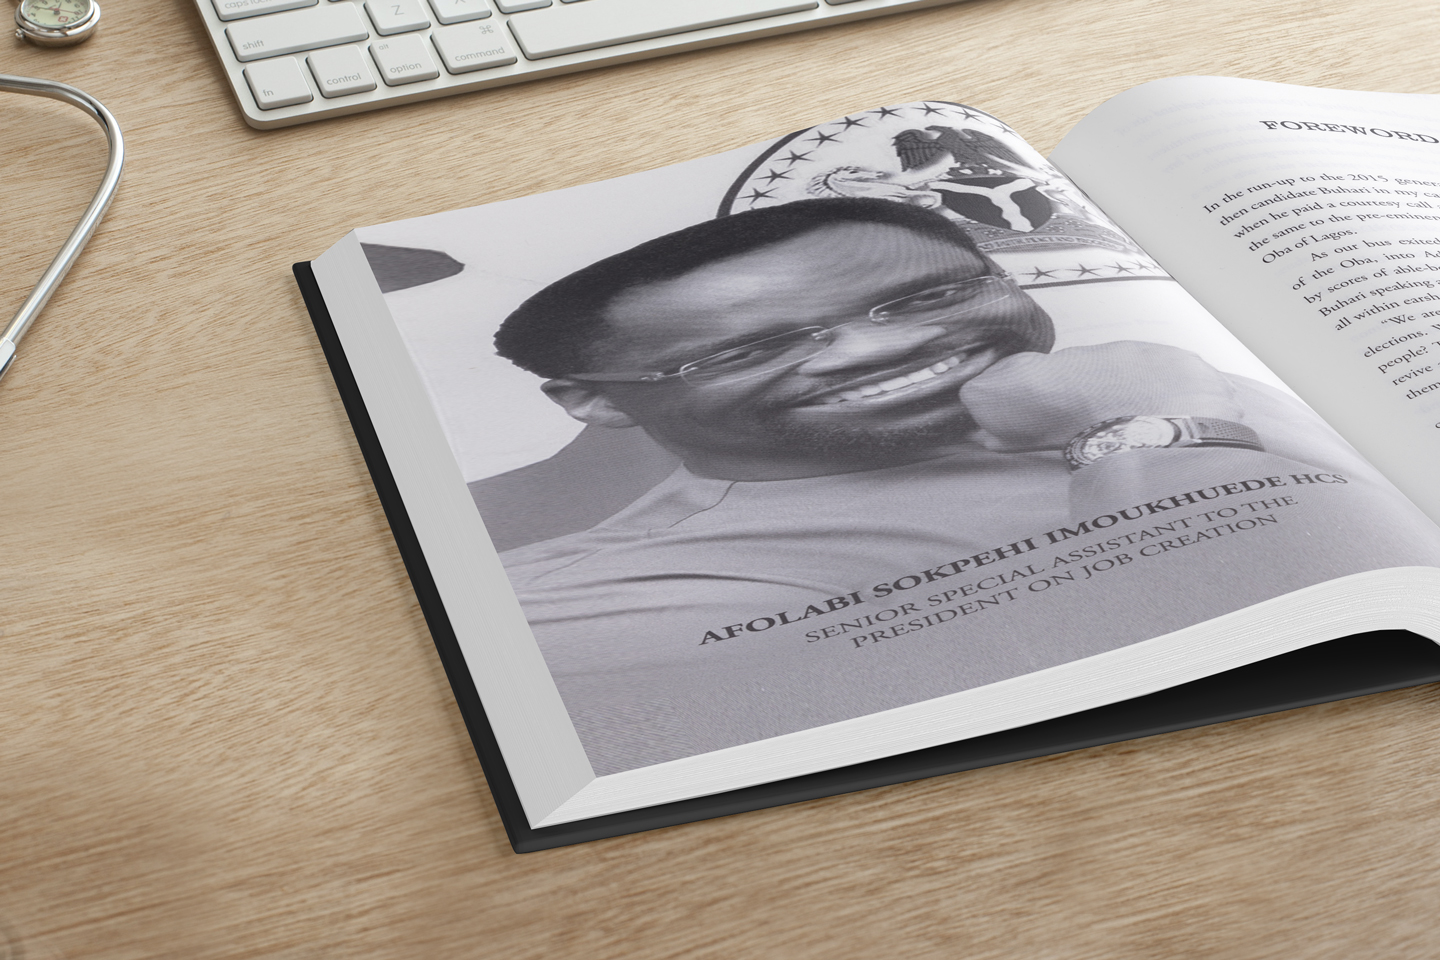 Never an Afterthought by Afolabi Sokpehi Imoukhuede book inset spread.